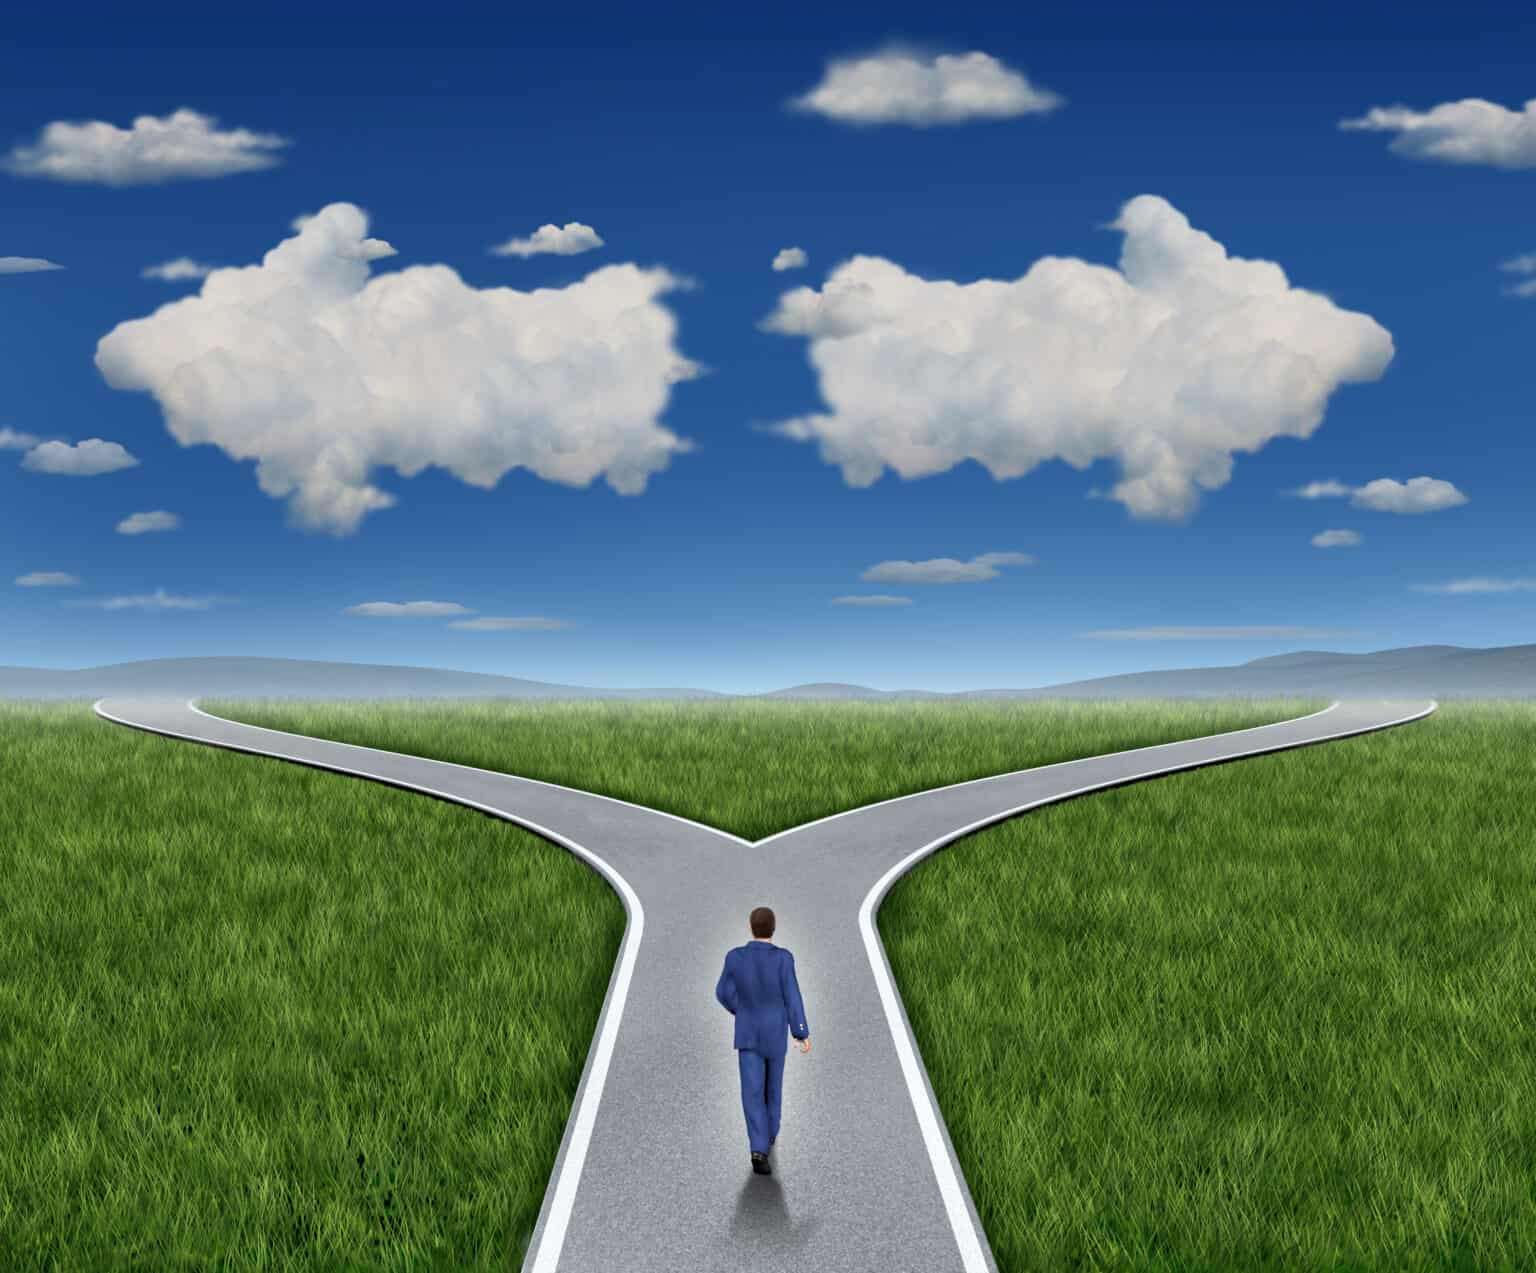 Business guidance questions and career path as a business person walking to a crossroad highway with two clouds shaped as arrows pointing in opposite directions on a blue summer sky and grass representing financial advice guide and looking for answers.